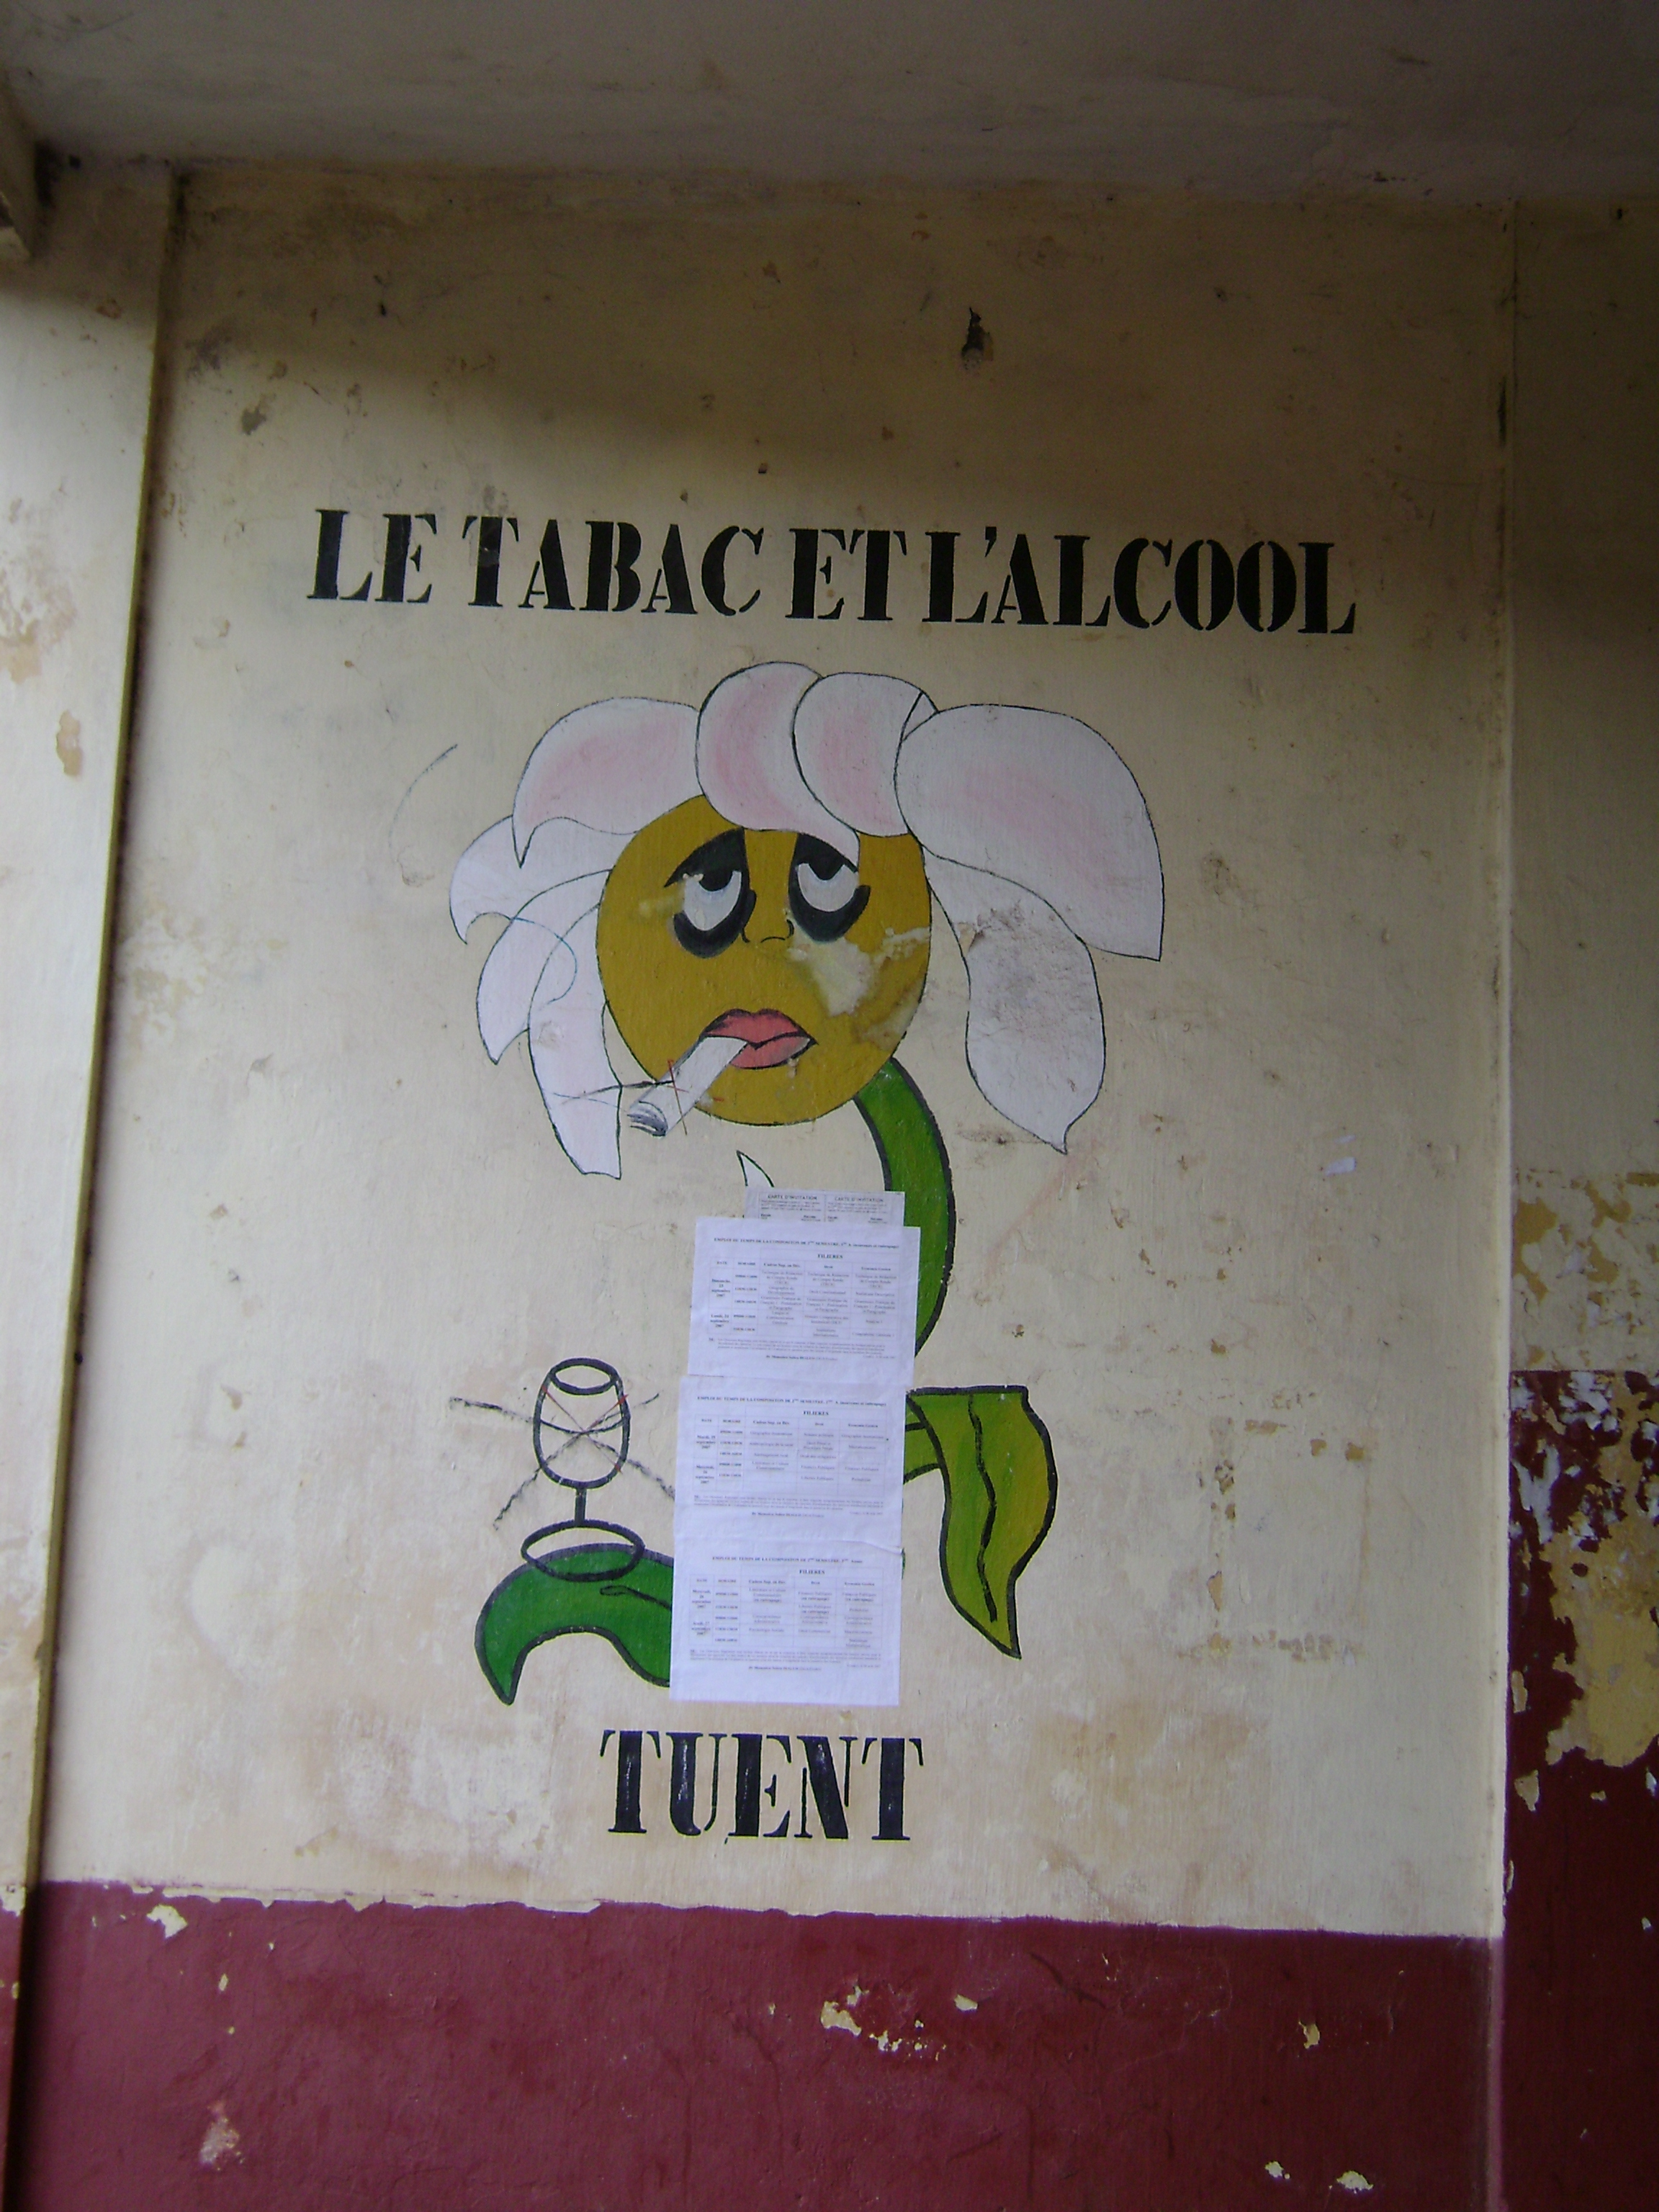 Anti-tobacco, anti-alcohol message painted on wall at Lycee Donka, Conakry, Guinea. 'Tobacco and alcohol kill'. October 2007.